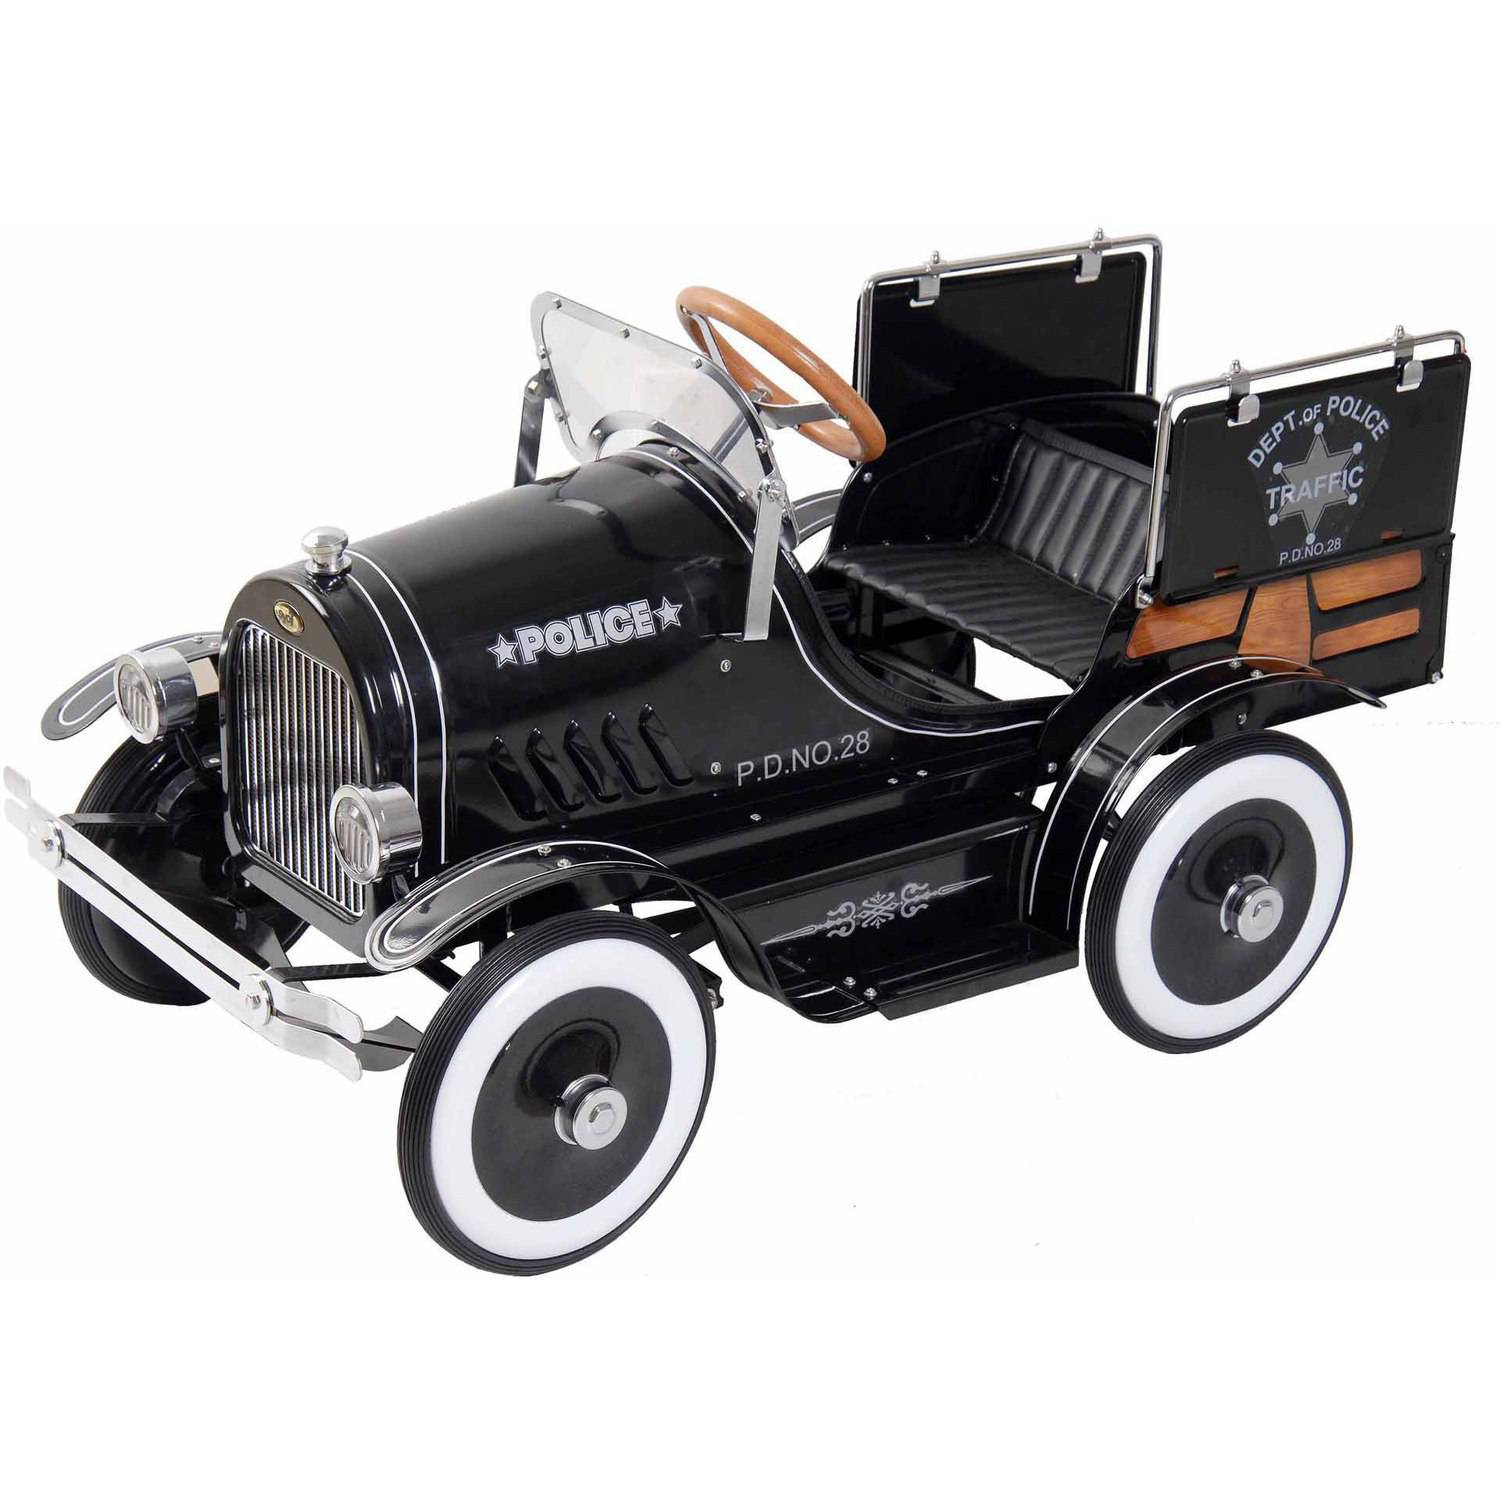 Deluxe Police Roadster Pedal Car